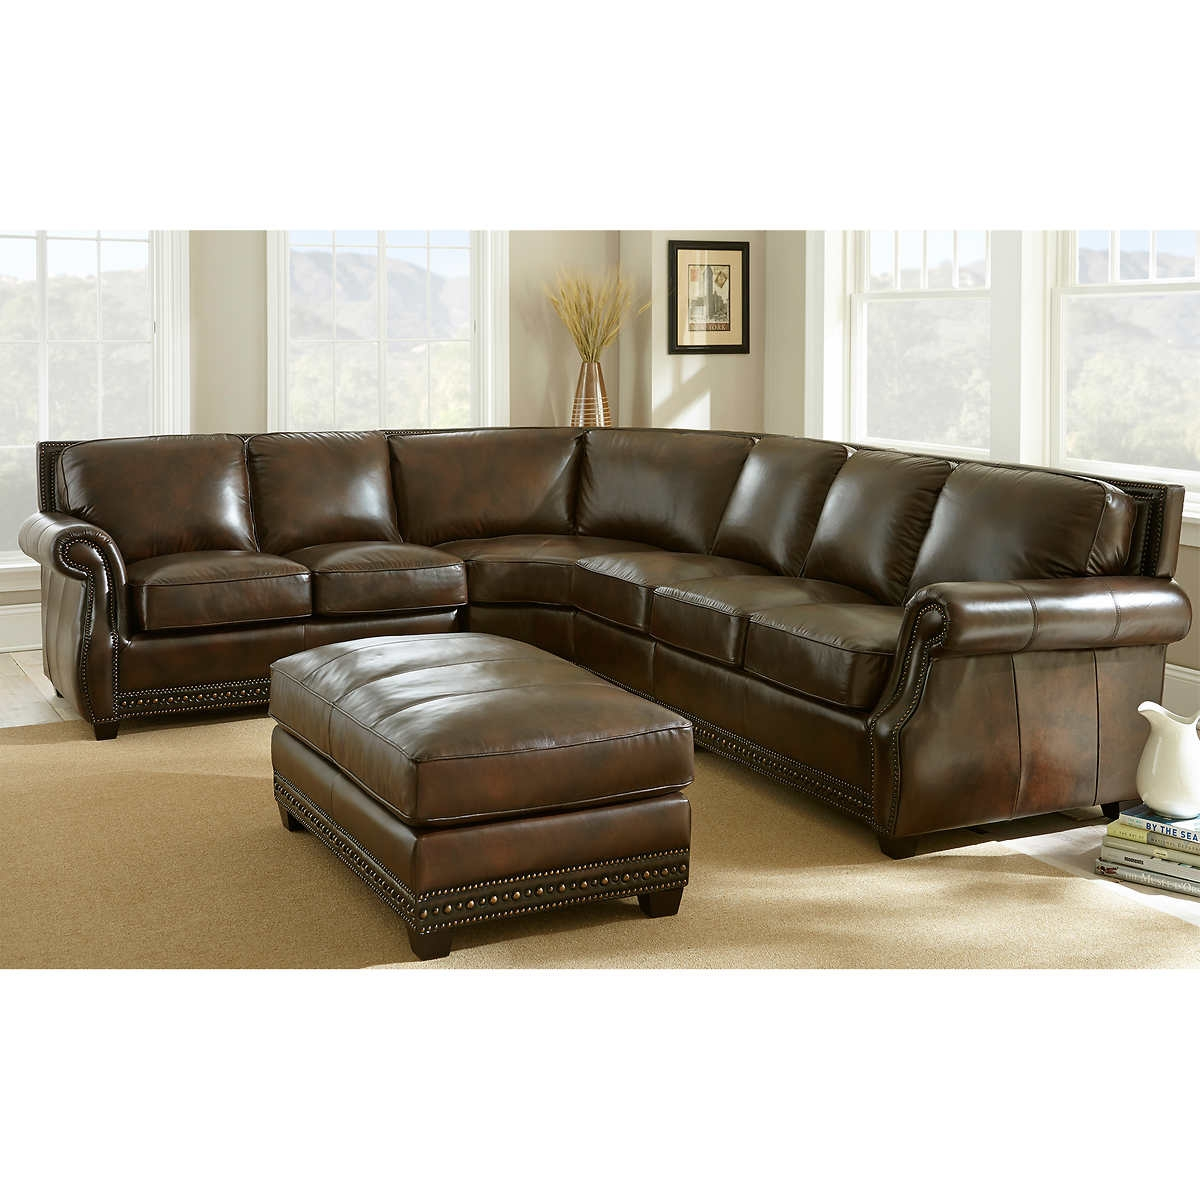 Remarkable Turquoise Leather Sectional Sofa 58 About Remodel Intended For Abbyson Living Charlotte Dark Brown Sectional Sofa And Ottoman (#11 of 12)